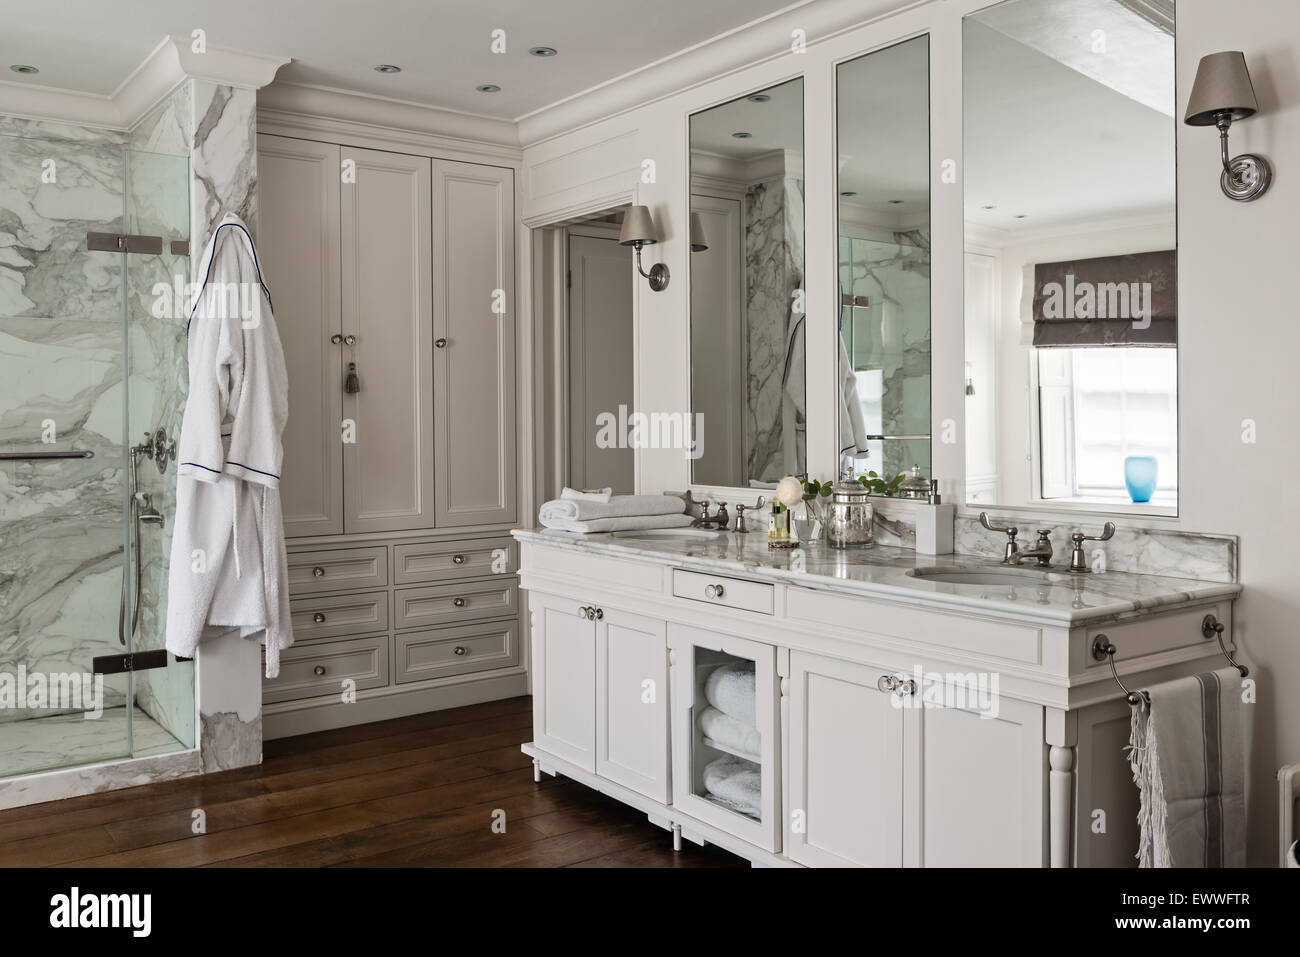 Bathroom with built in storage, polished floorboards and marble surfaces. Stock Photo